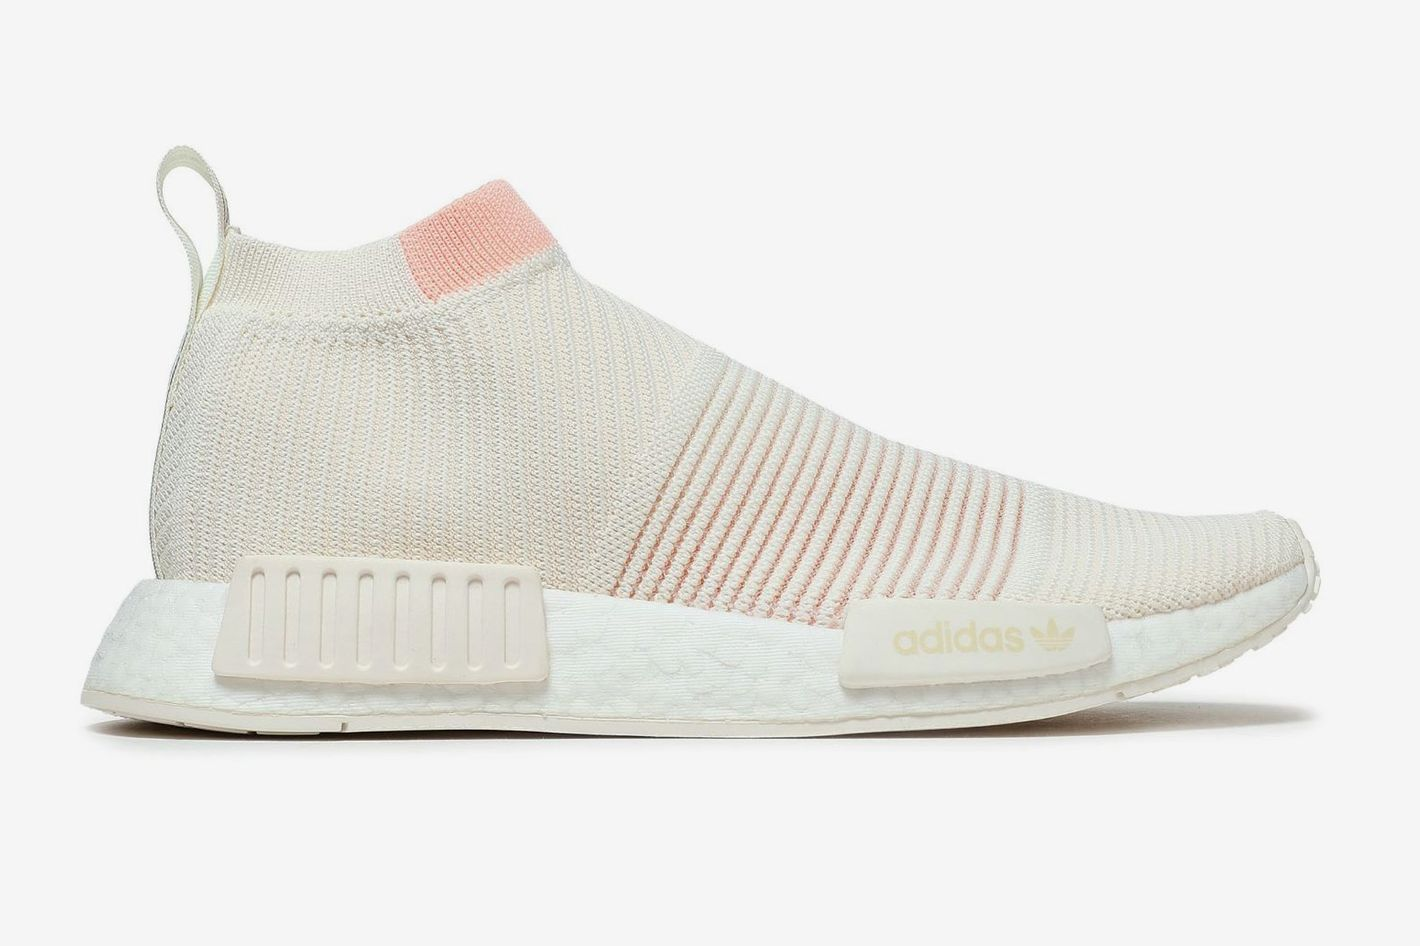 Adidas Originals NMD_CS1 Rubber-trimmed Primeknit Sneakers